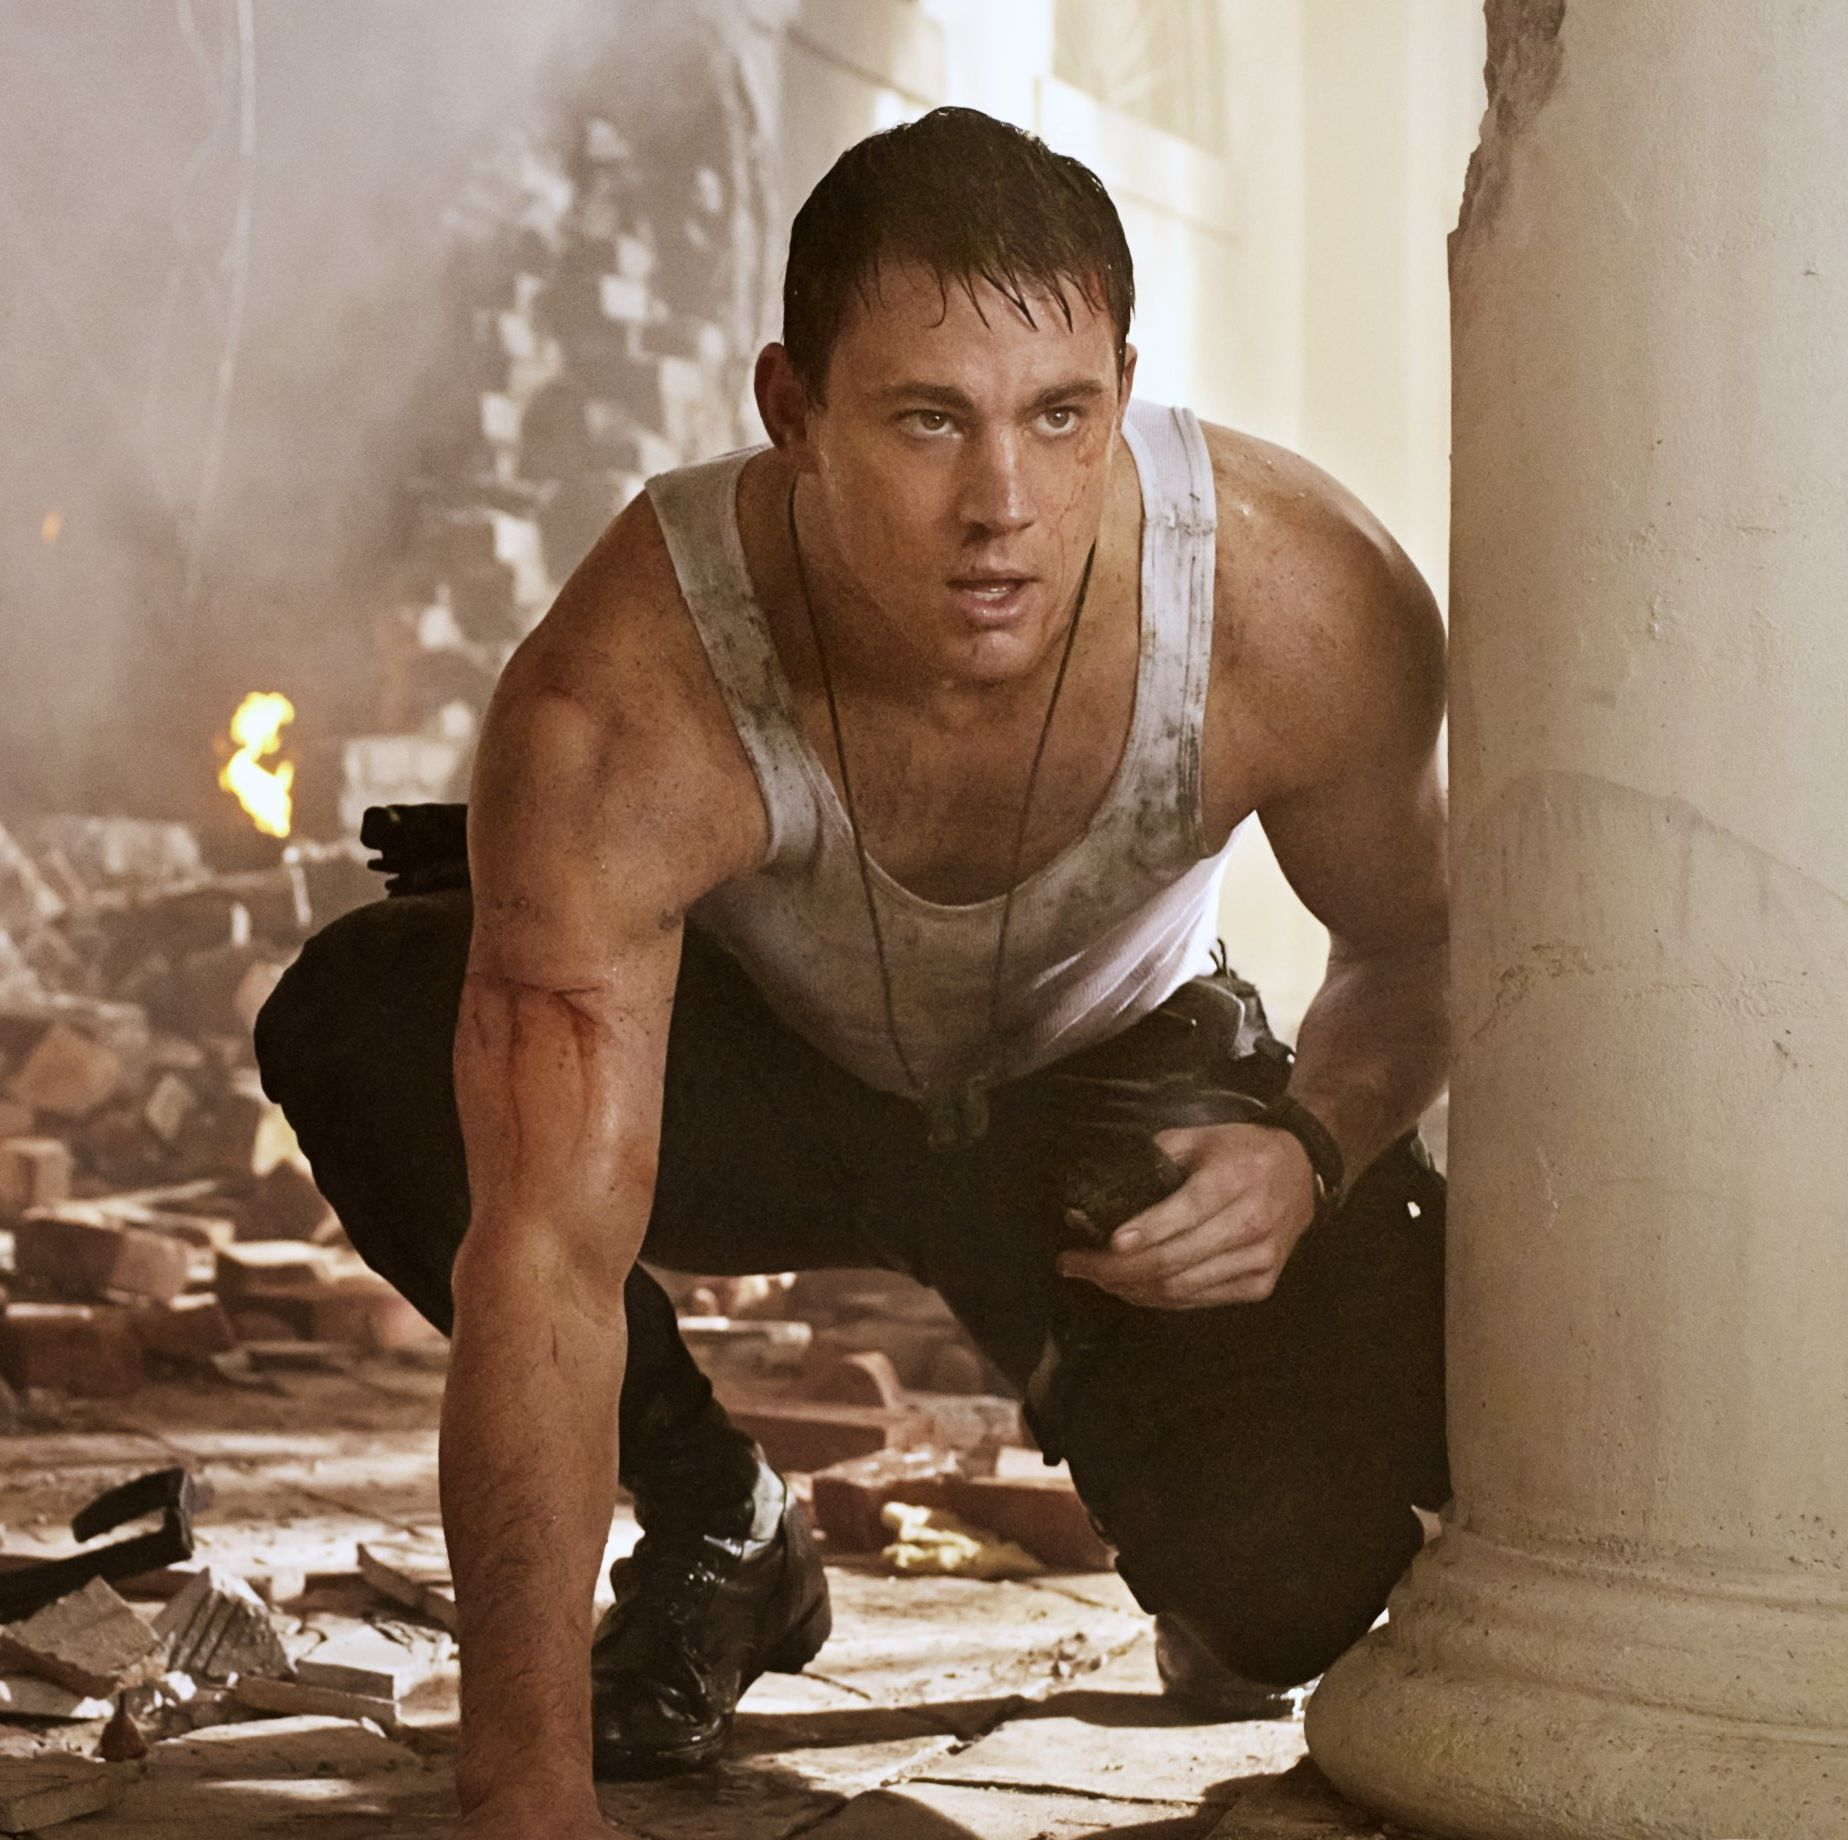 Jamie Foxx and Channing Tatum in 'White House Down'